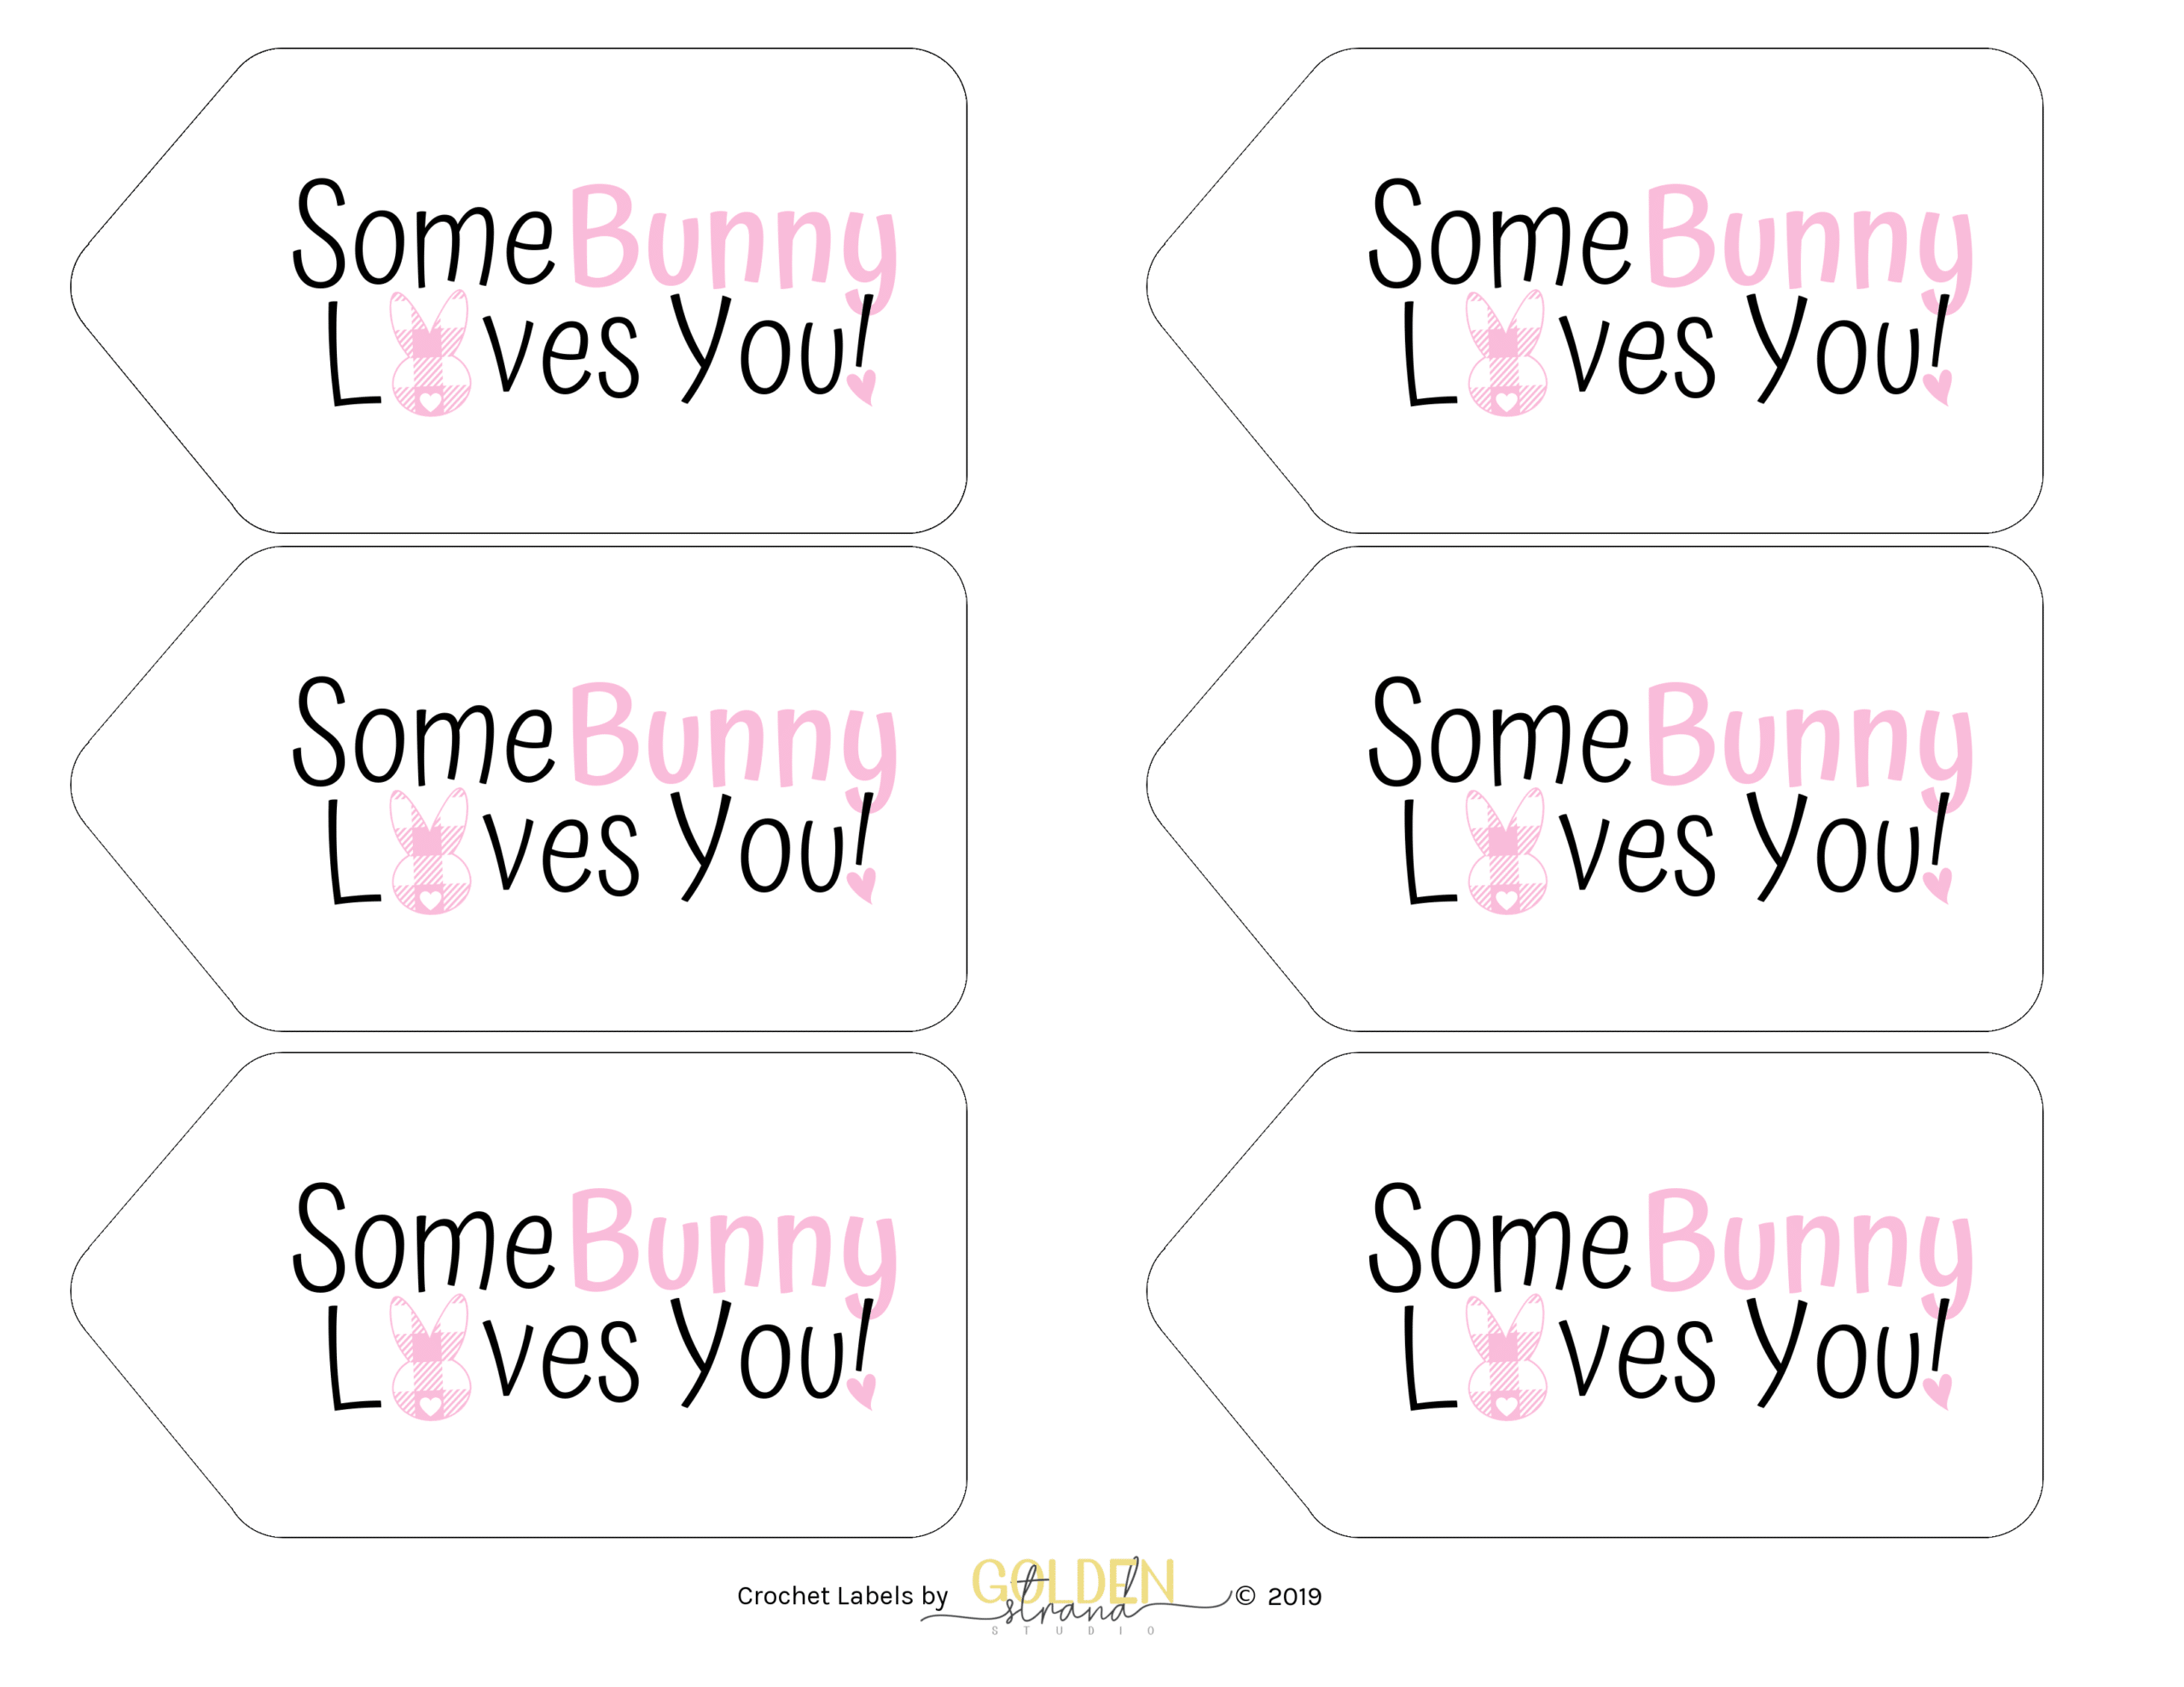 Some Bunny Loves You Gingham Gift Tags